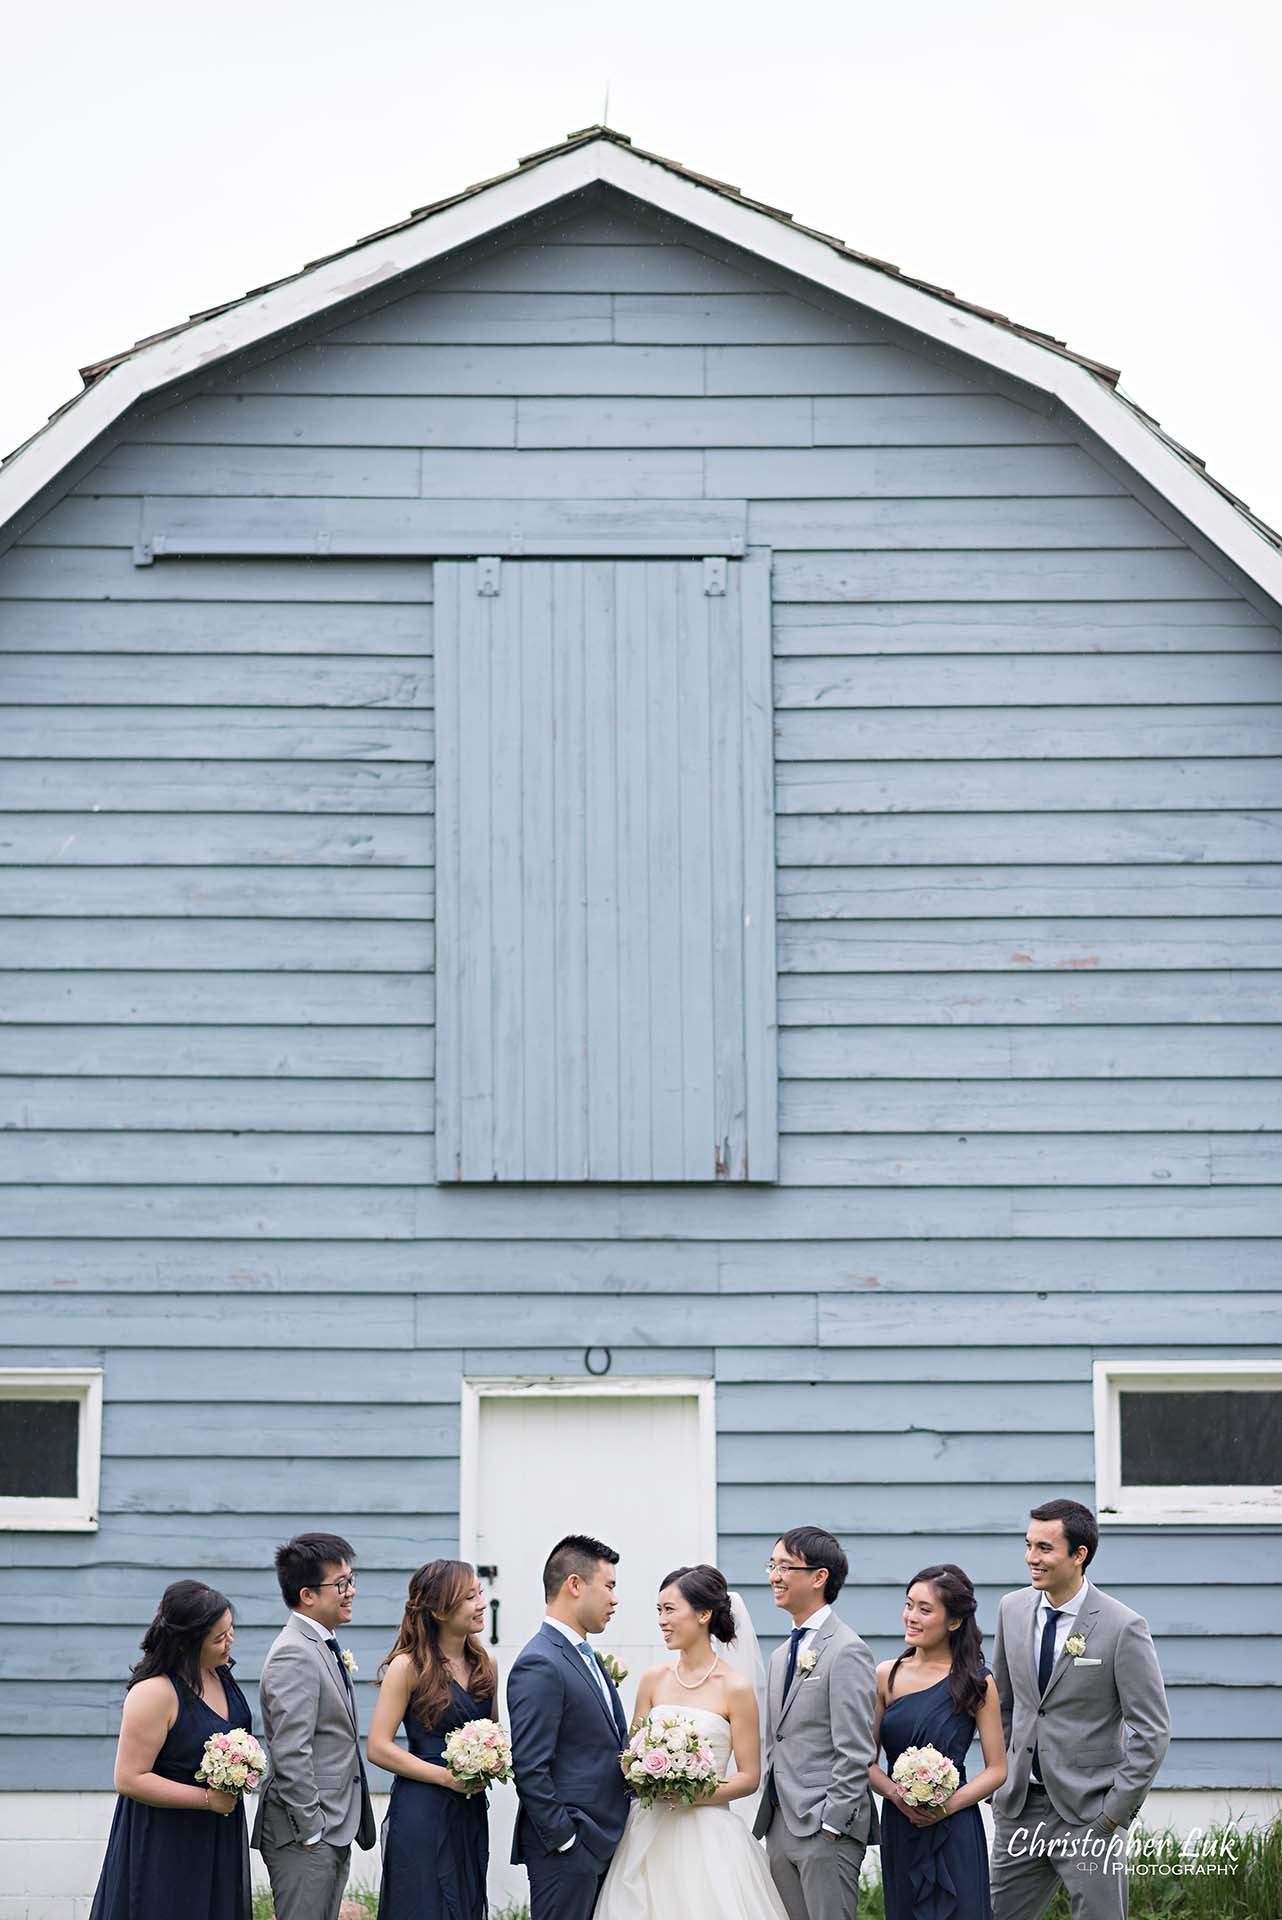 Christopher Luk Toronto Wedding Photographer Angus Glen Golf Club Markham Main Blue Barn Farm Historic Estate Building Together Natural Candid Photojournalistic Bride Groom Best Man Maid of Honour Bridal Party Groomsmen Bridesmaids Portrait Top